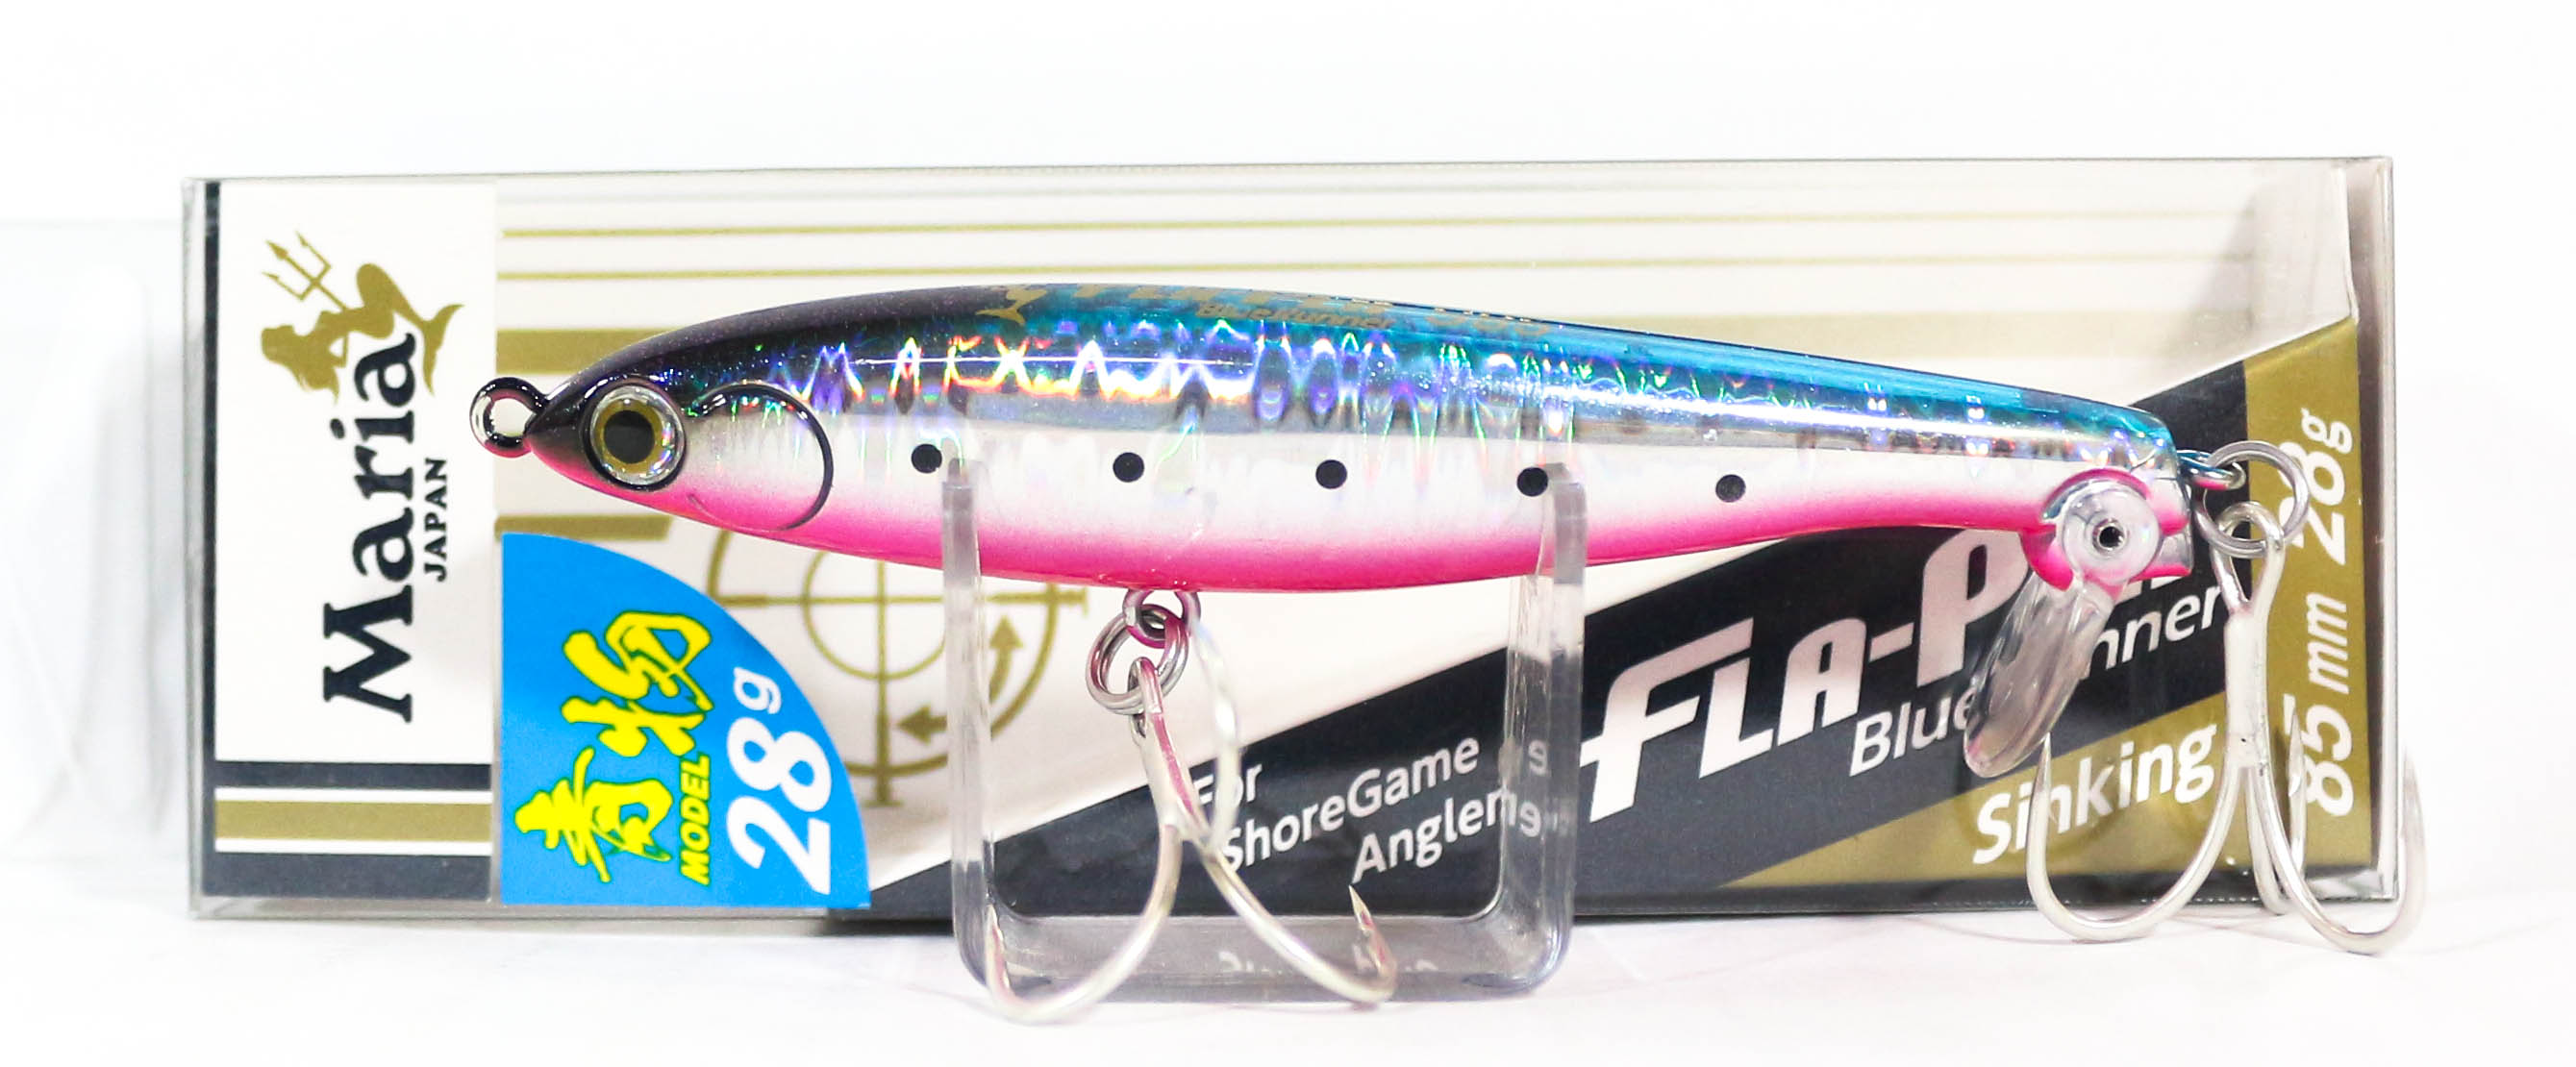 Maria Fla Pen S85 Fluttering Pencil Sinking Lure B13H (9824)